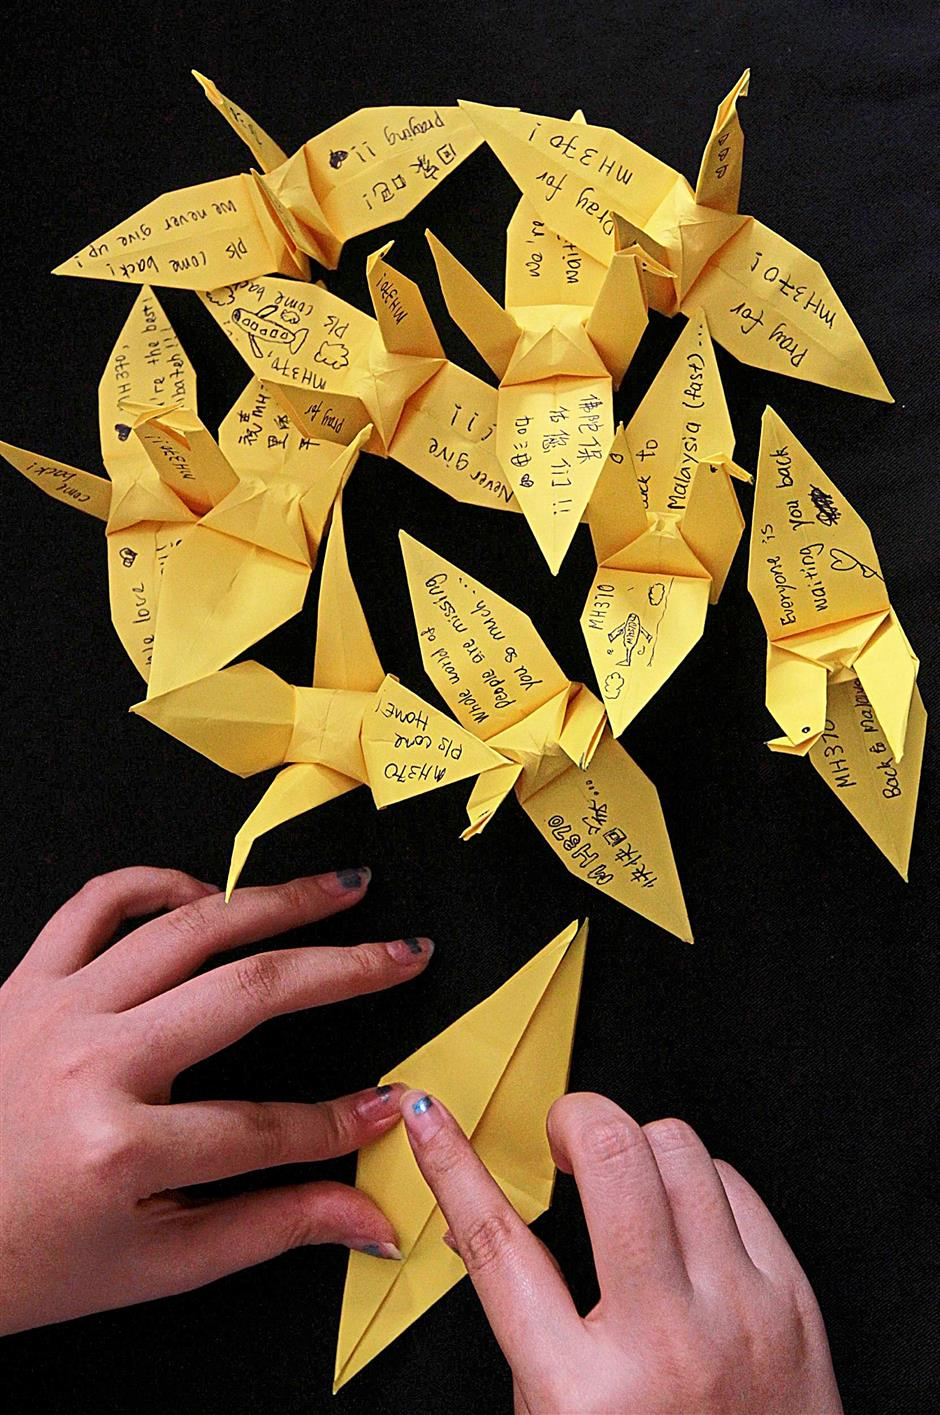 1. Participants channelling their prayers for the missing airliner through the act of folding paper cranes in various colours.2. Well wishes are inscribed on the wings of the paper cranes.